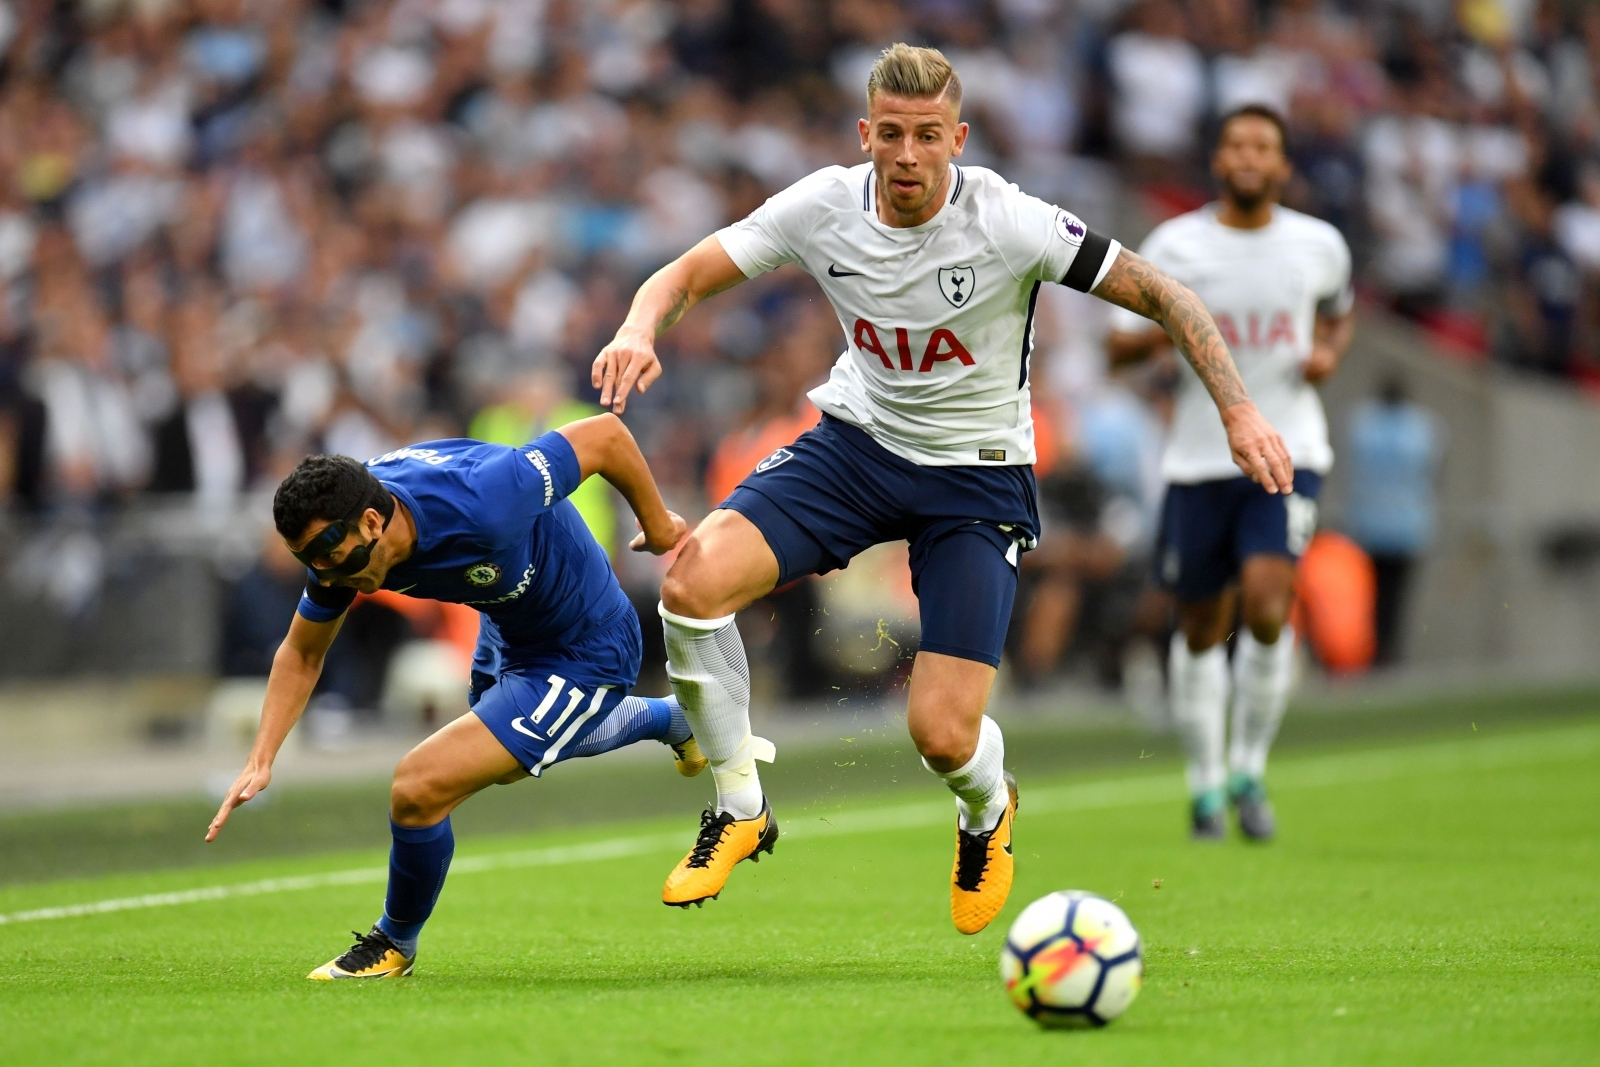 Alderweireld will not play for Spurs against Juventus next Wednesday